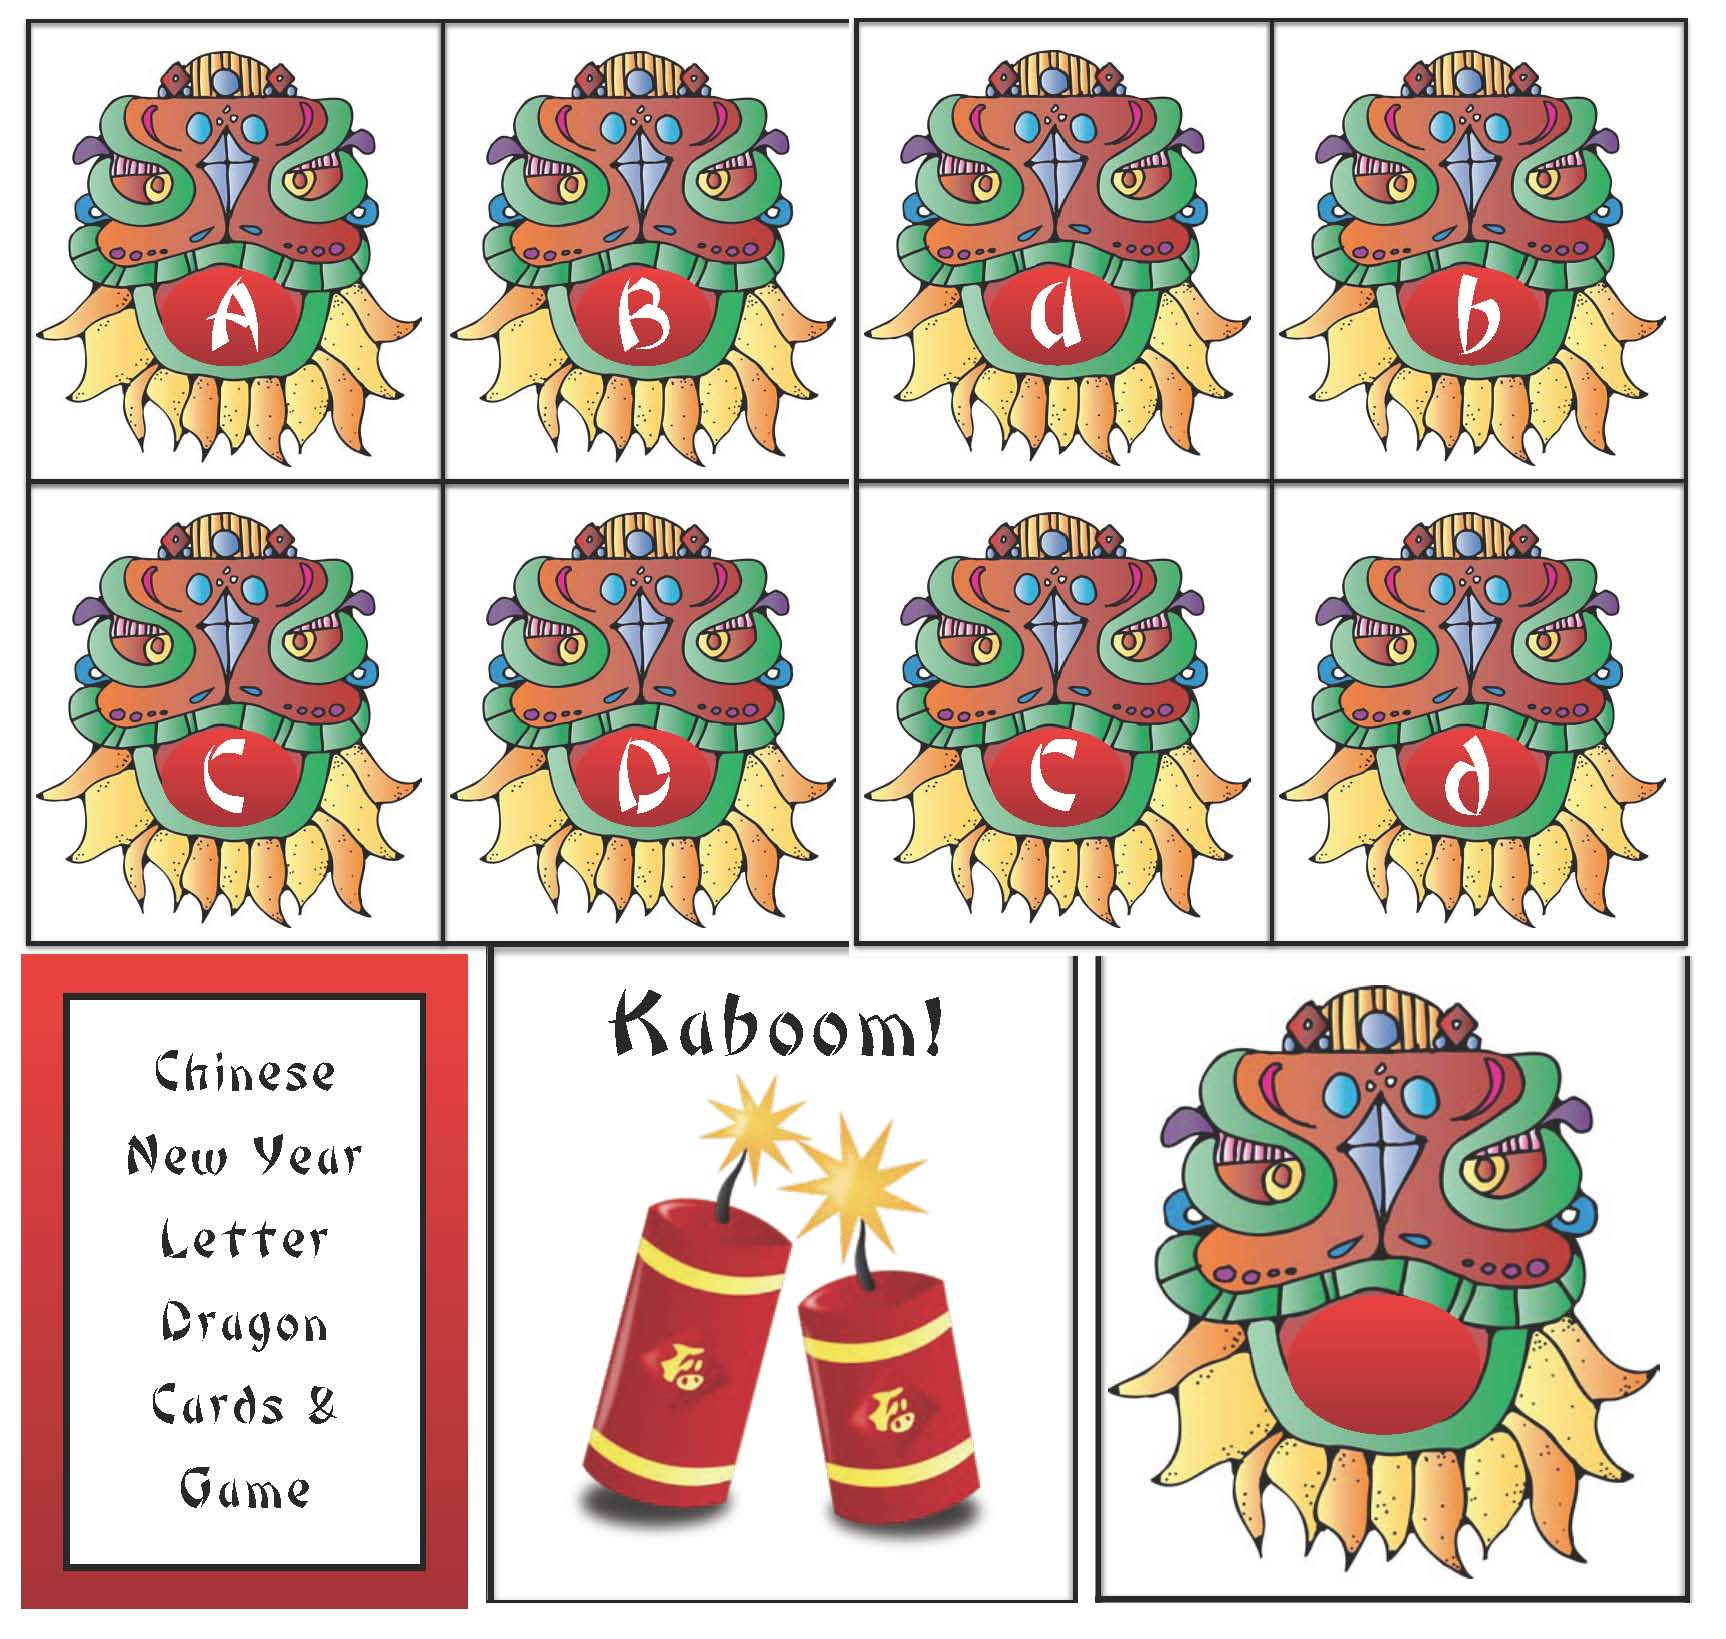 chinese new year activities, tikki tikki tembo, the story of Nian, ideas for chinese new year, chinese new year crafts, spring festival activities, lunar new year activities, china activies, chinese new year alphabet cards, chinese new year bookmarks, chinese new year puzzles, chinese new year writing prompts, chinese new year crafts, year of the horse activities, dragon activites, snake activities, chinese new year crafts, chinese new year bibliography, chinese new year books, fan crafts, lantern crafts, lantern pattern,